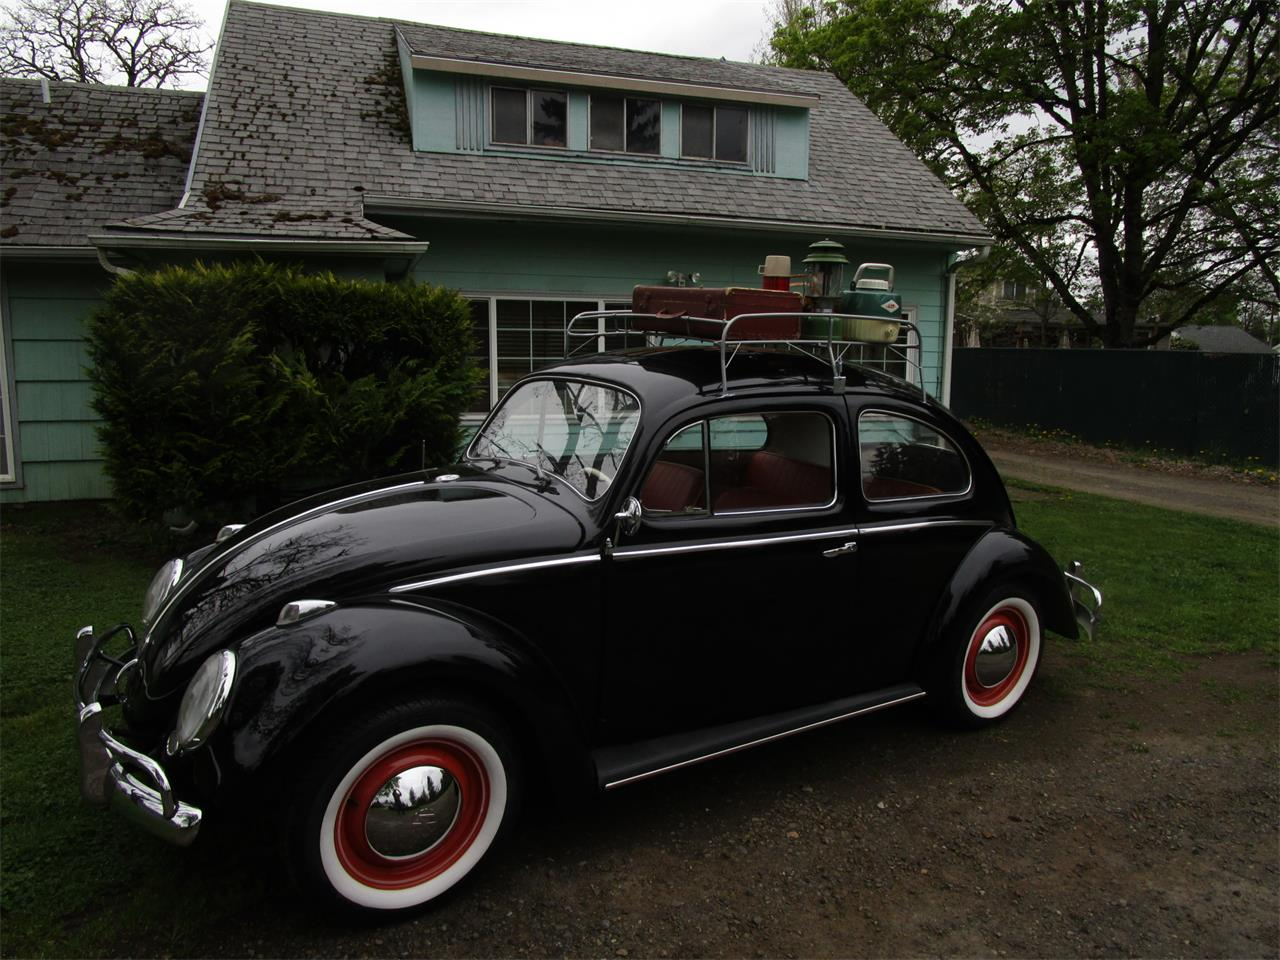 Large Picture of '59 Beetle located in Portland Oregon Auction Vehicle Offered by Bring A Trailer - QC16